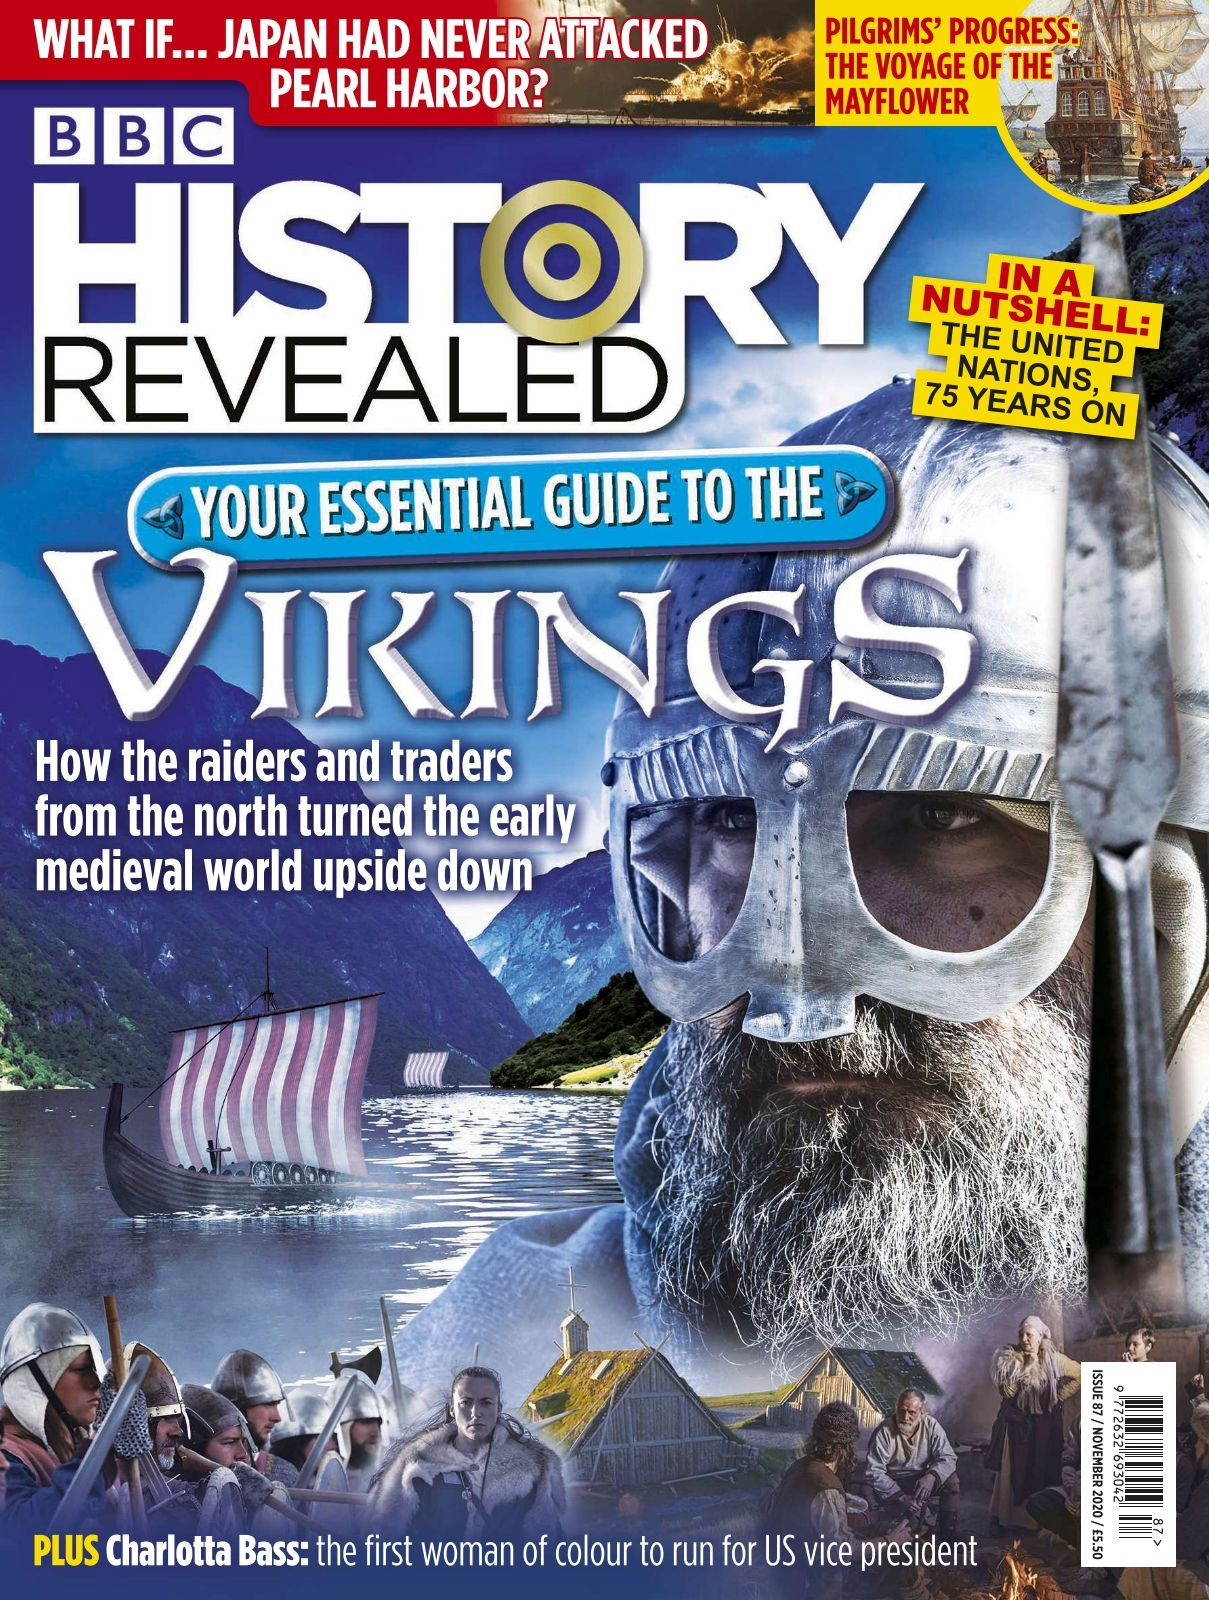 Bbc History Revealed Issue 11 2020